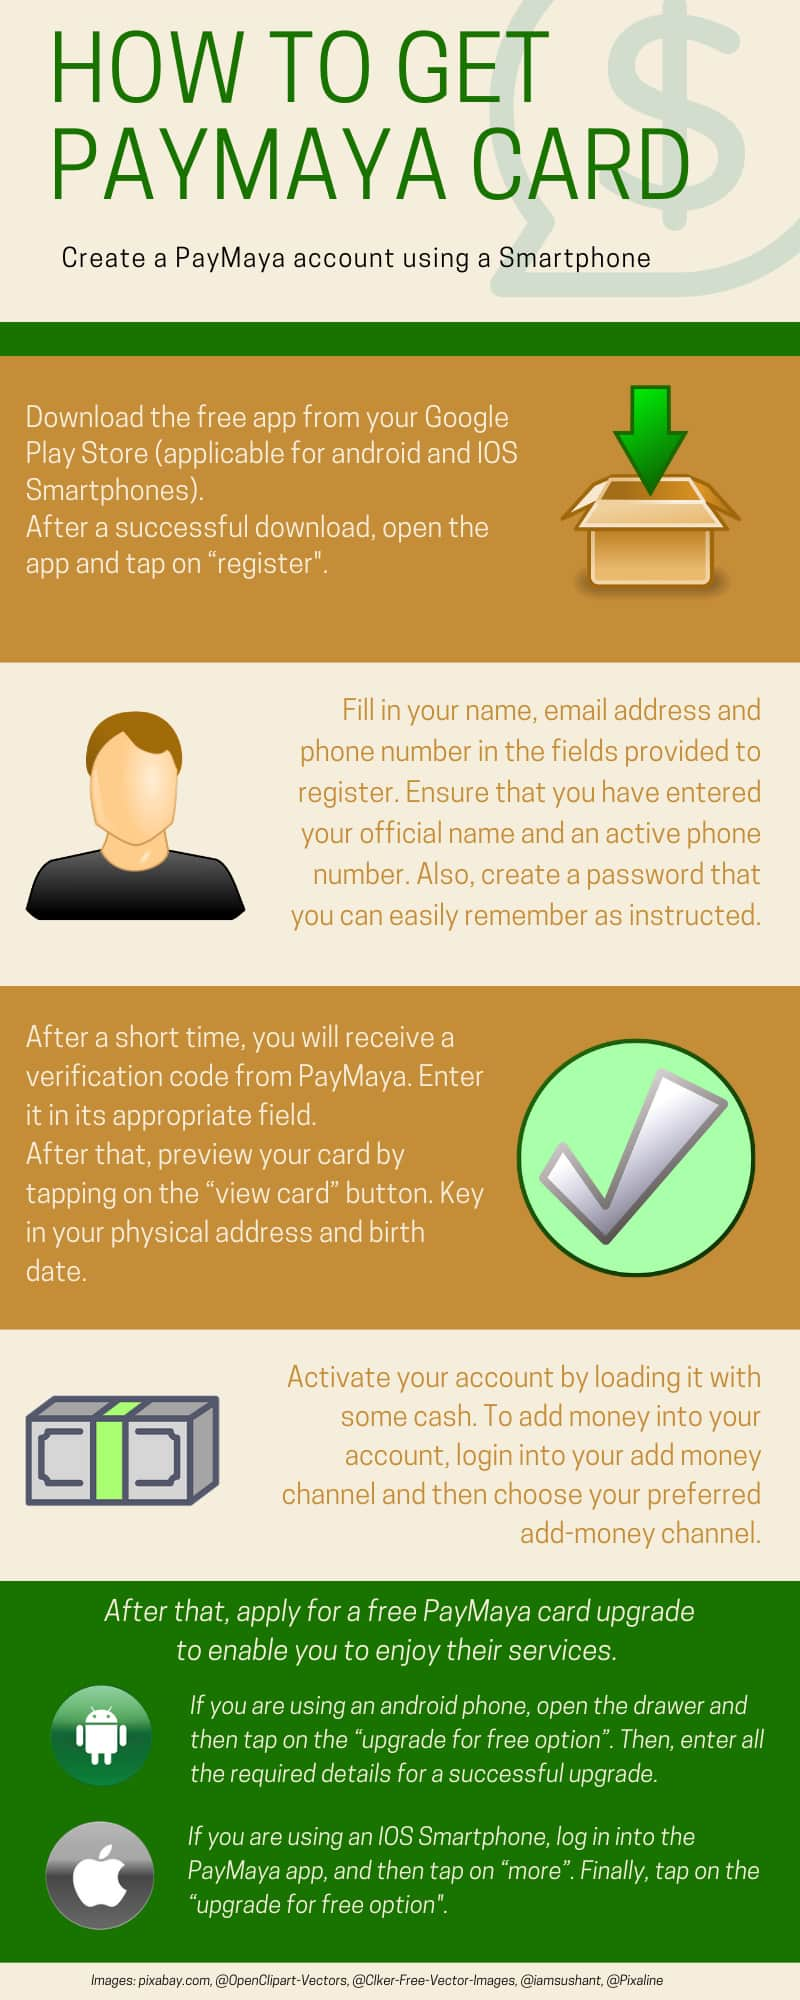 How to create a PayMaya account using a Smartphone